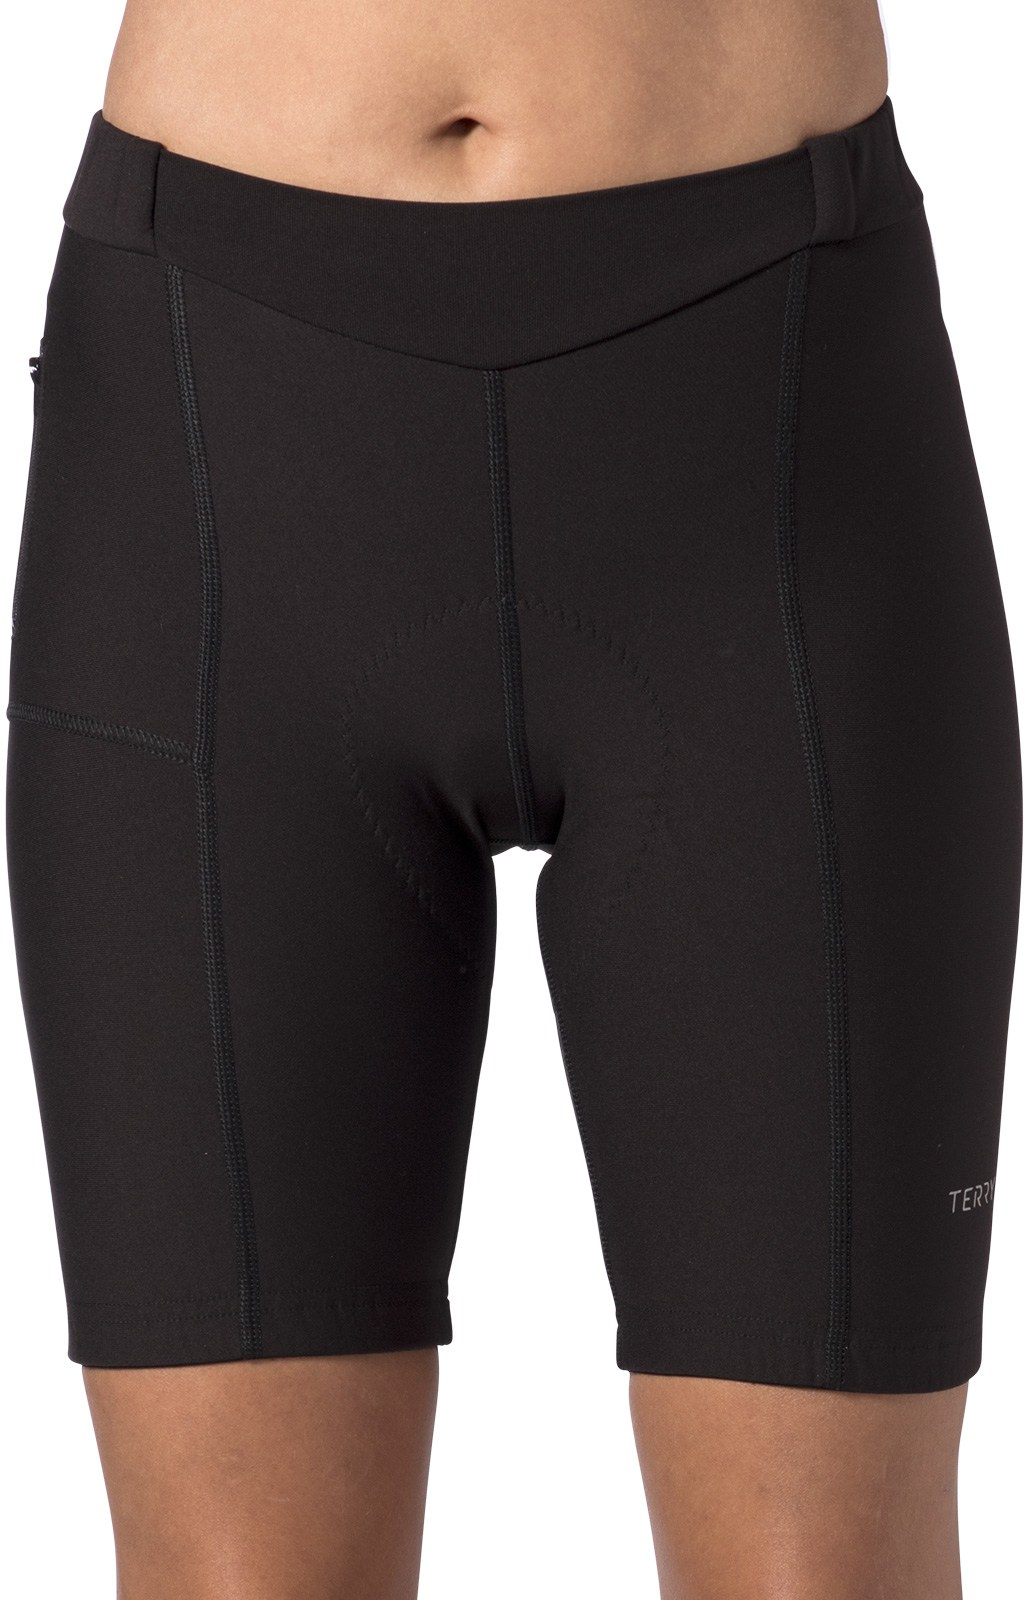 Terry Touring Bike Shorts - Women's